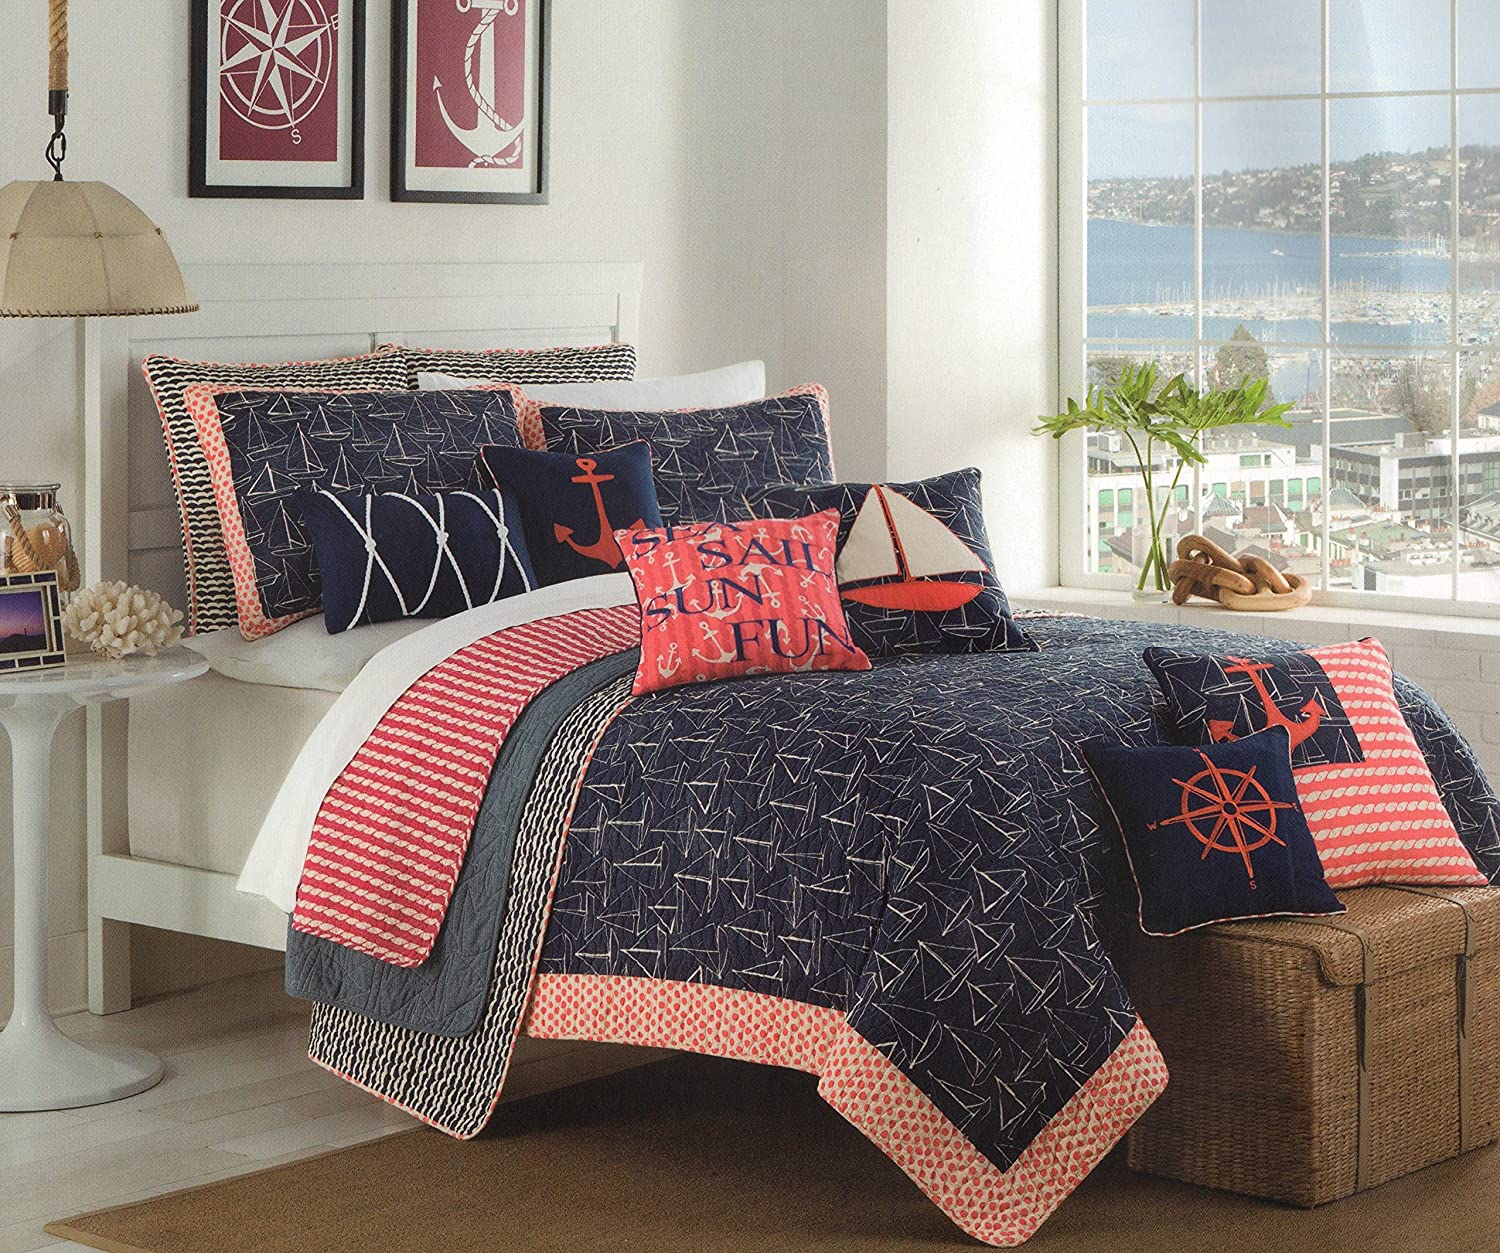 Relatively Amazon.com: Max Studio Nautical Design Bedspread 3pc Full/Queen  PP41